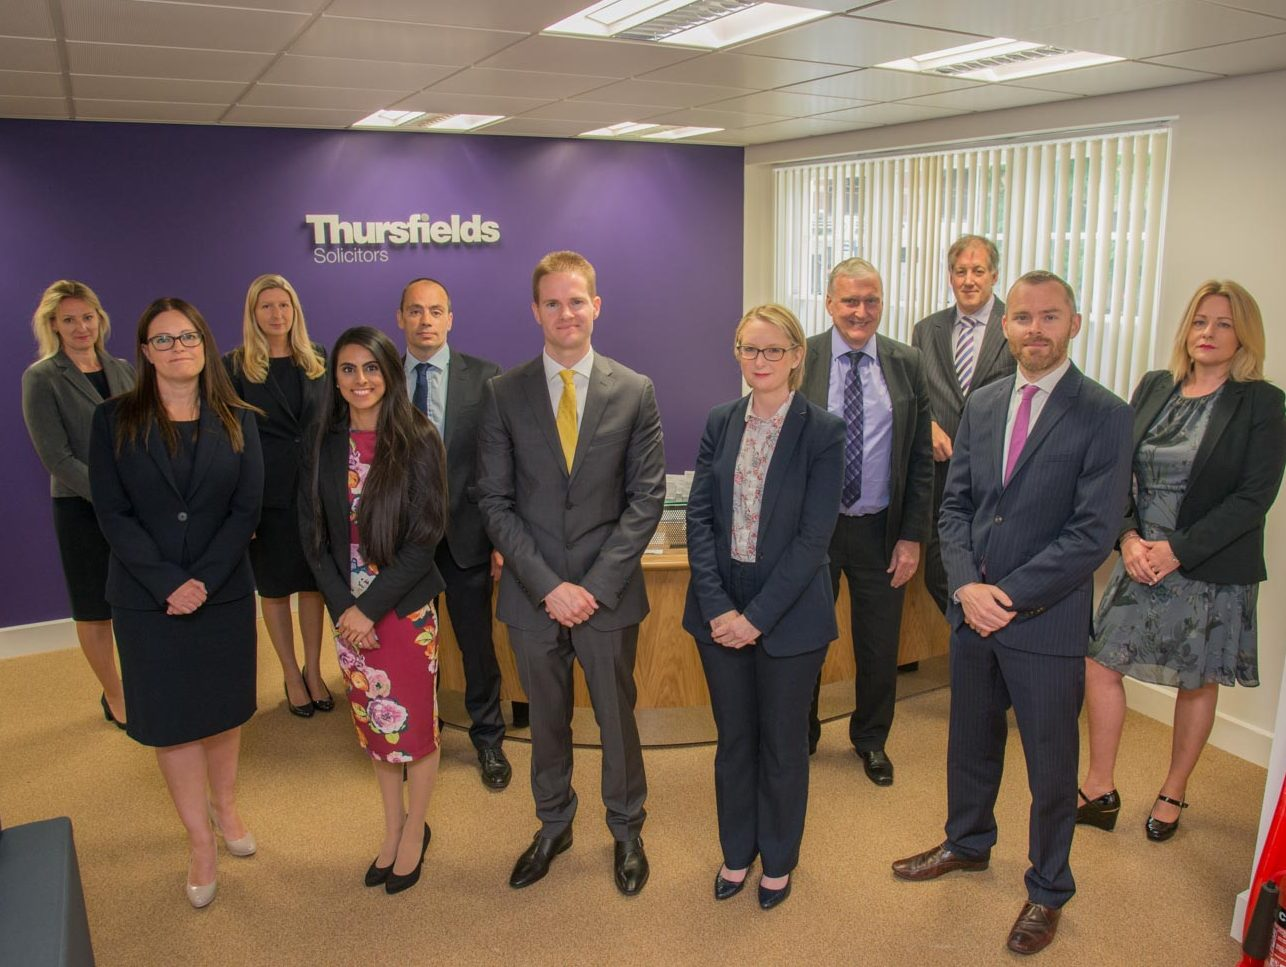 THursfields Solihull Office Staff